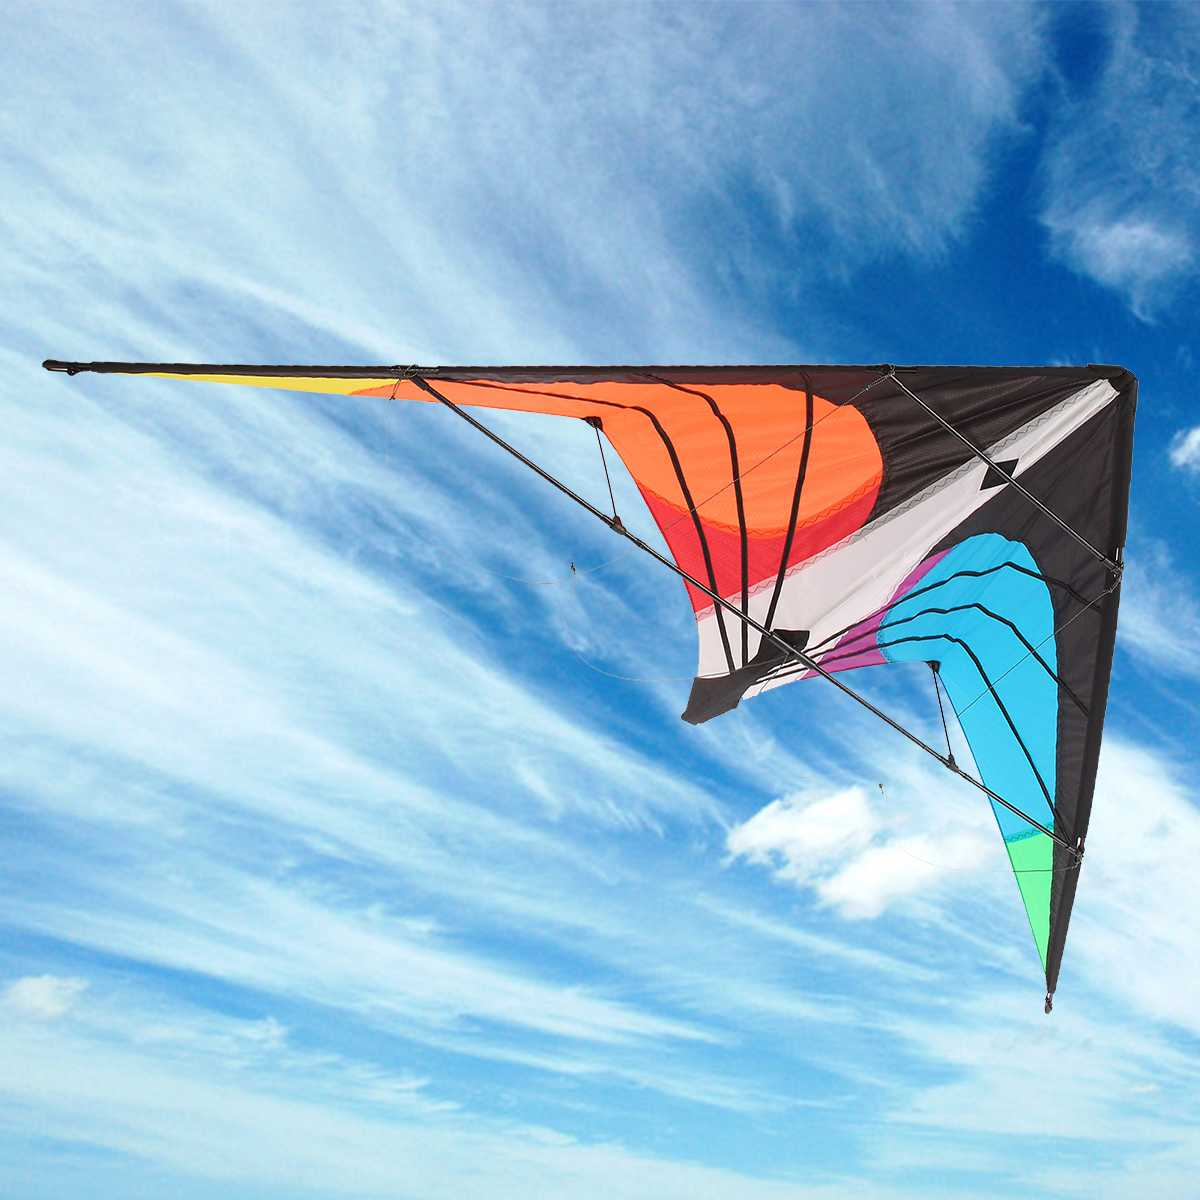 180x80cm Outdoor Fun Sports Dual Line Stunt Kite / Power Kites Good Flying with D-Shape Handles 30 Meters Lines